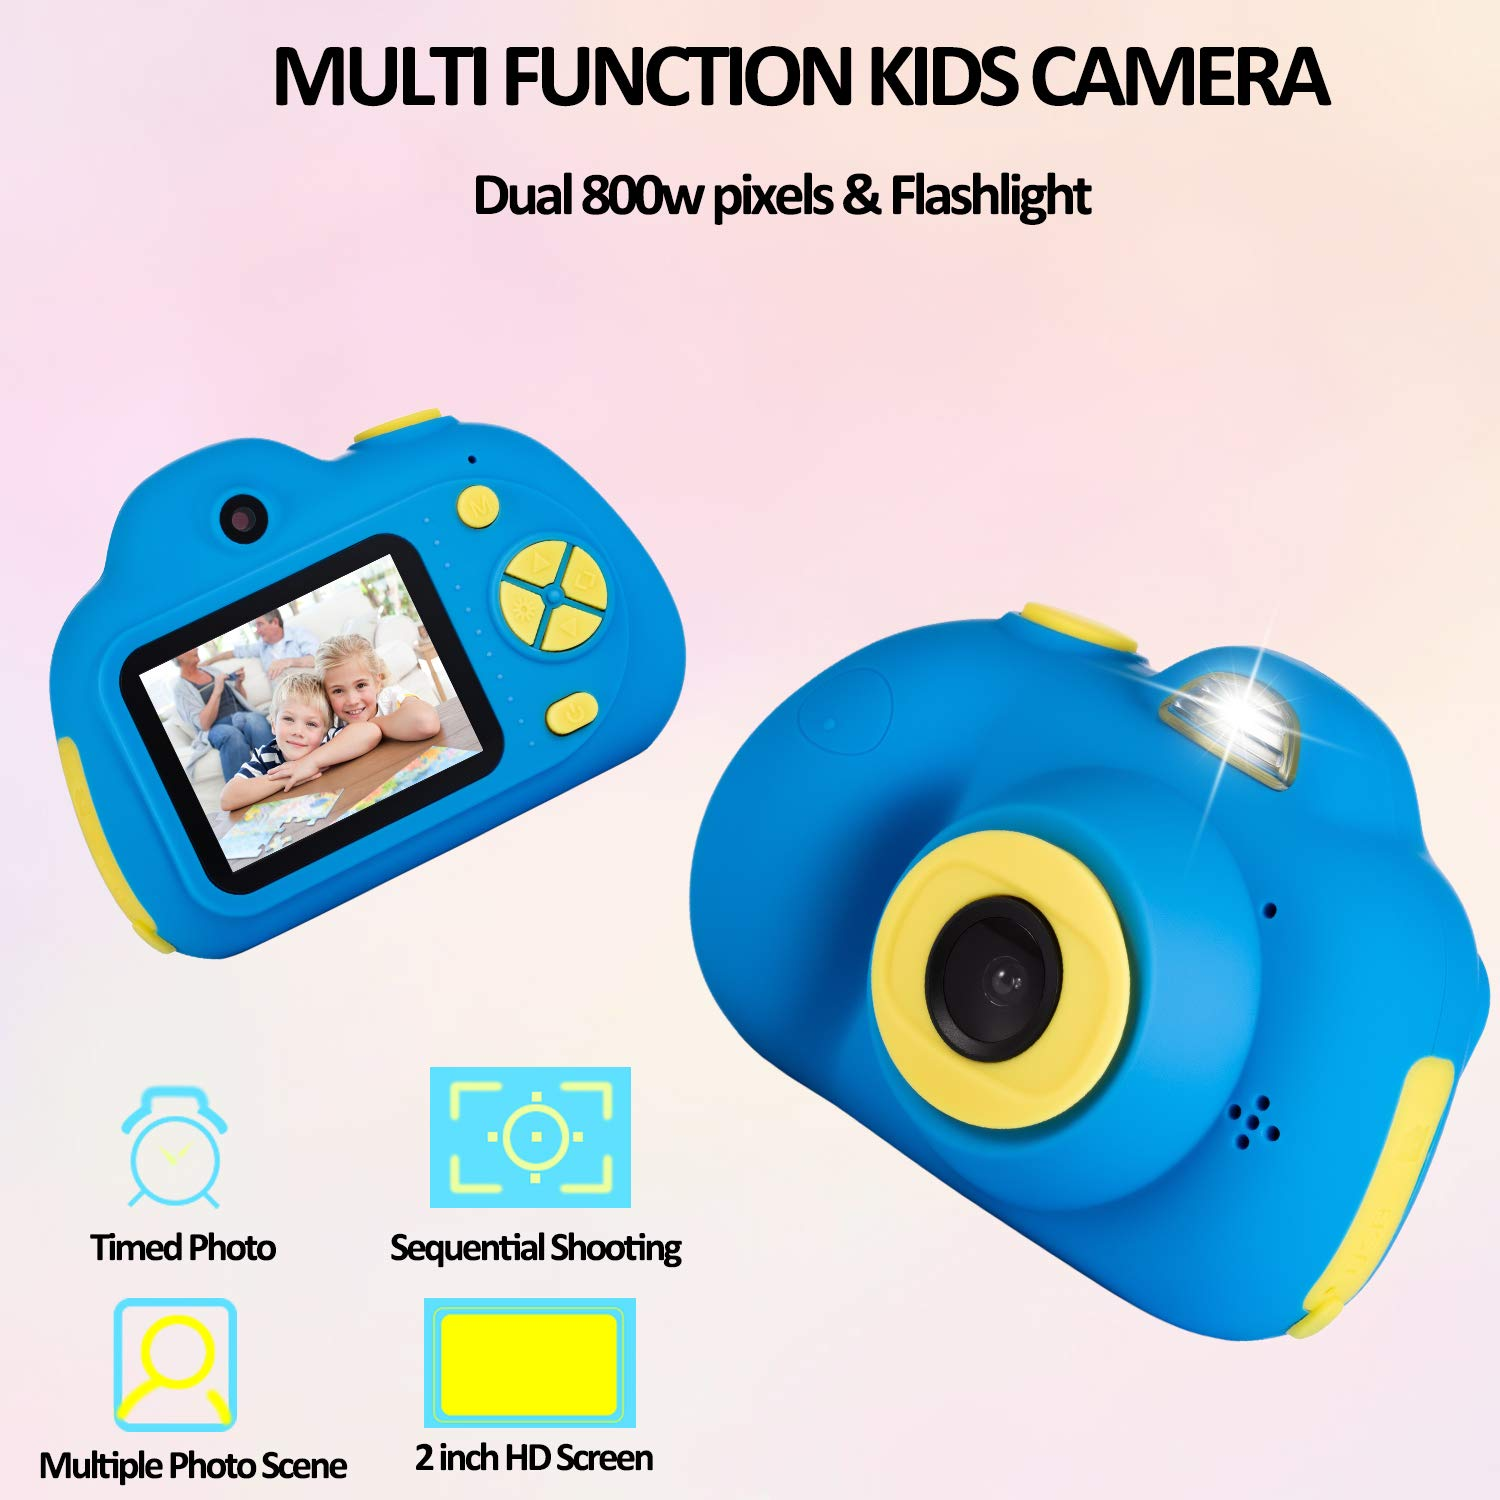 Deeteck Kids Video Camera for Girls Boys, 2 inch Mini Digital Camera,Shockproof Children Camcorders, Toys for 5-9 year old Boys Birthday Gifts with 16GB SD Card(Blue) by Deeteck (Image #2)